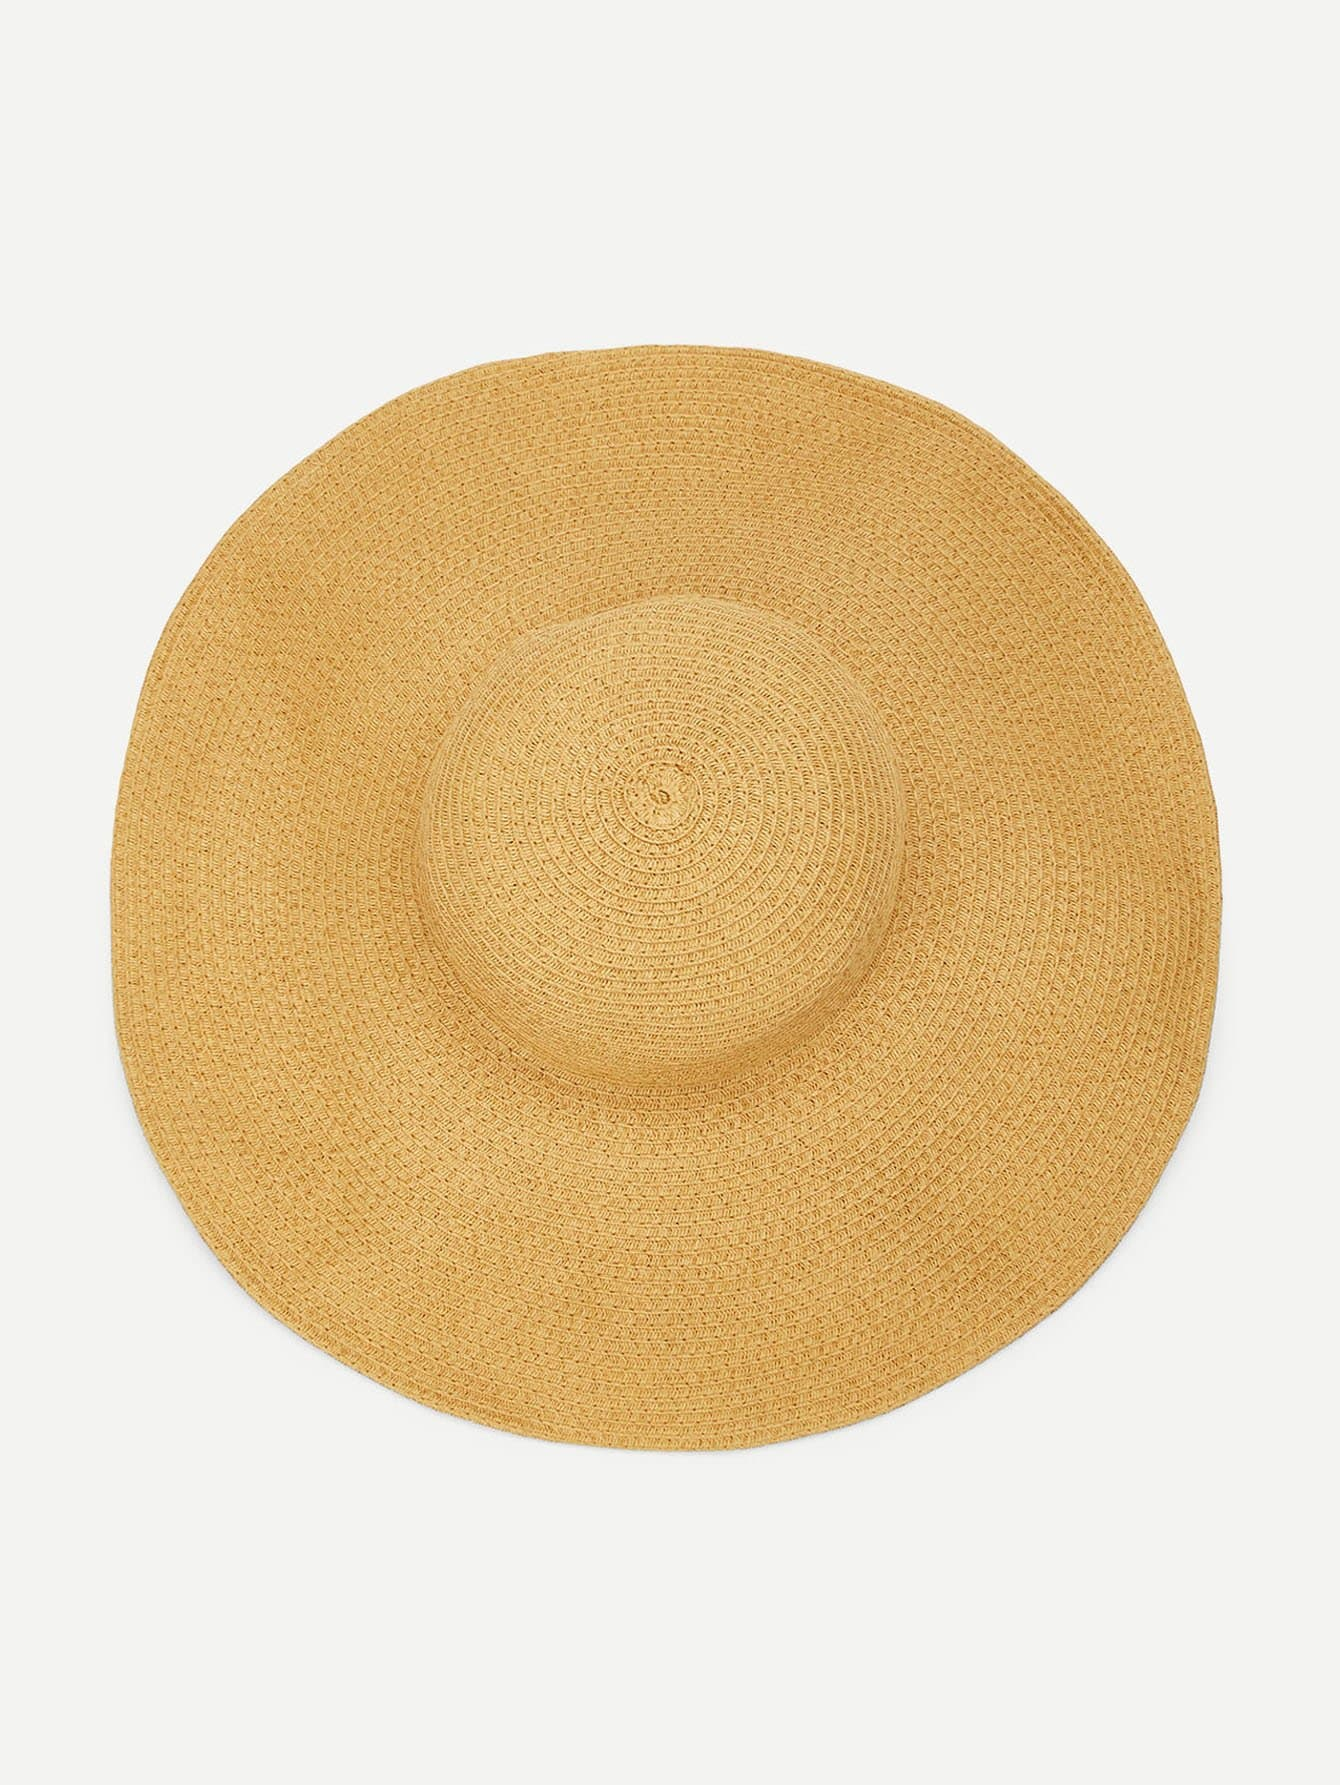 Wide Brim Straw Hat wide brim straw hat